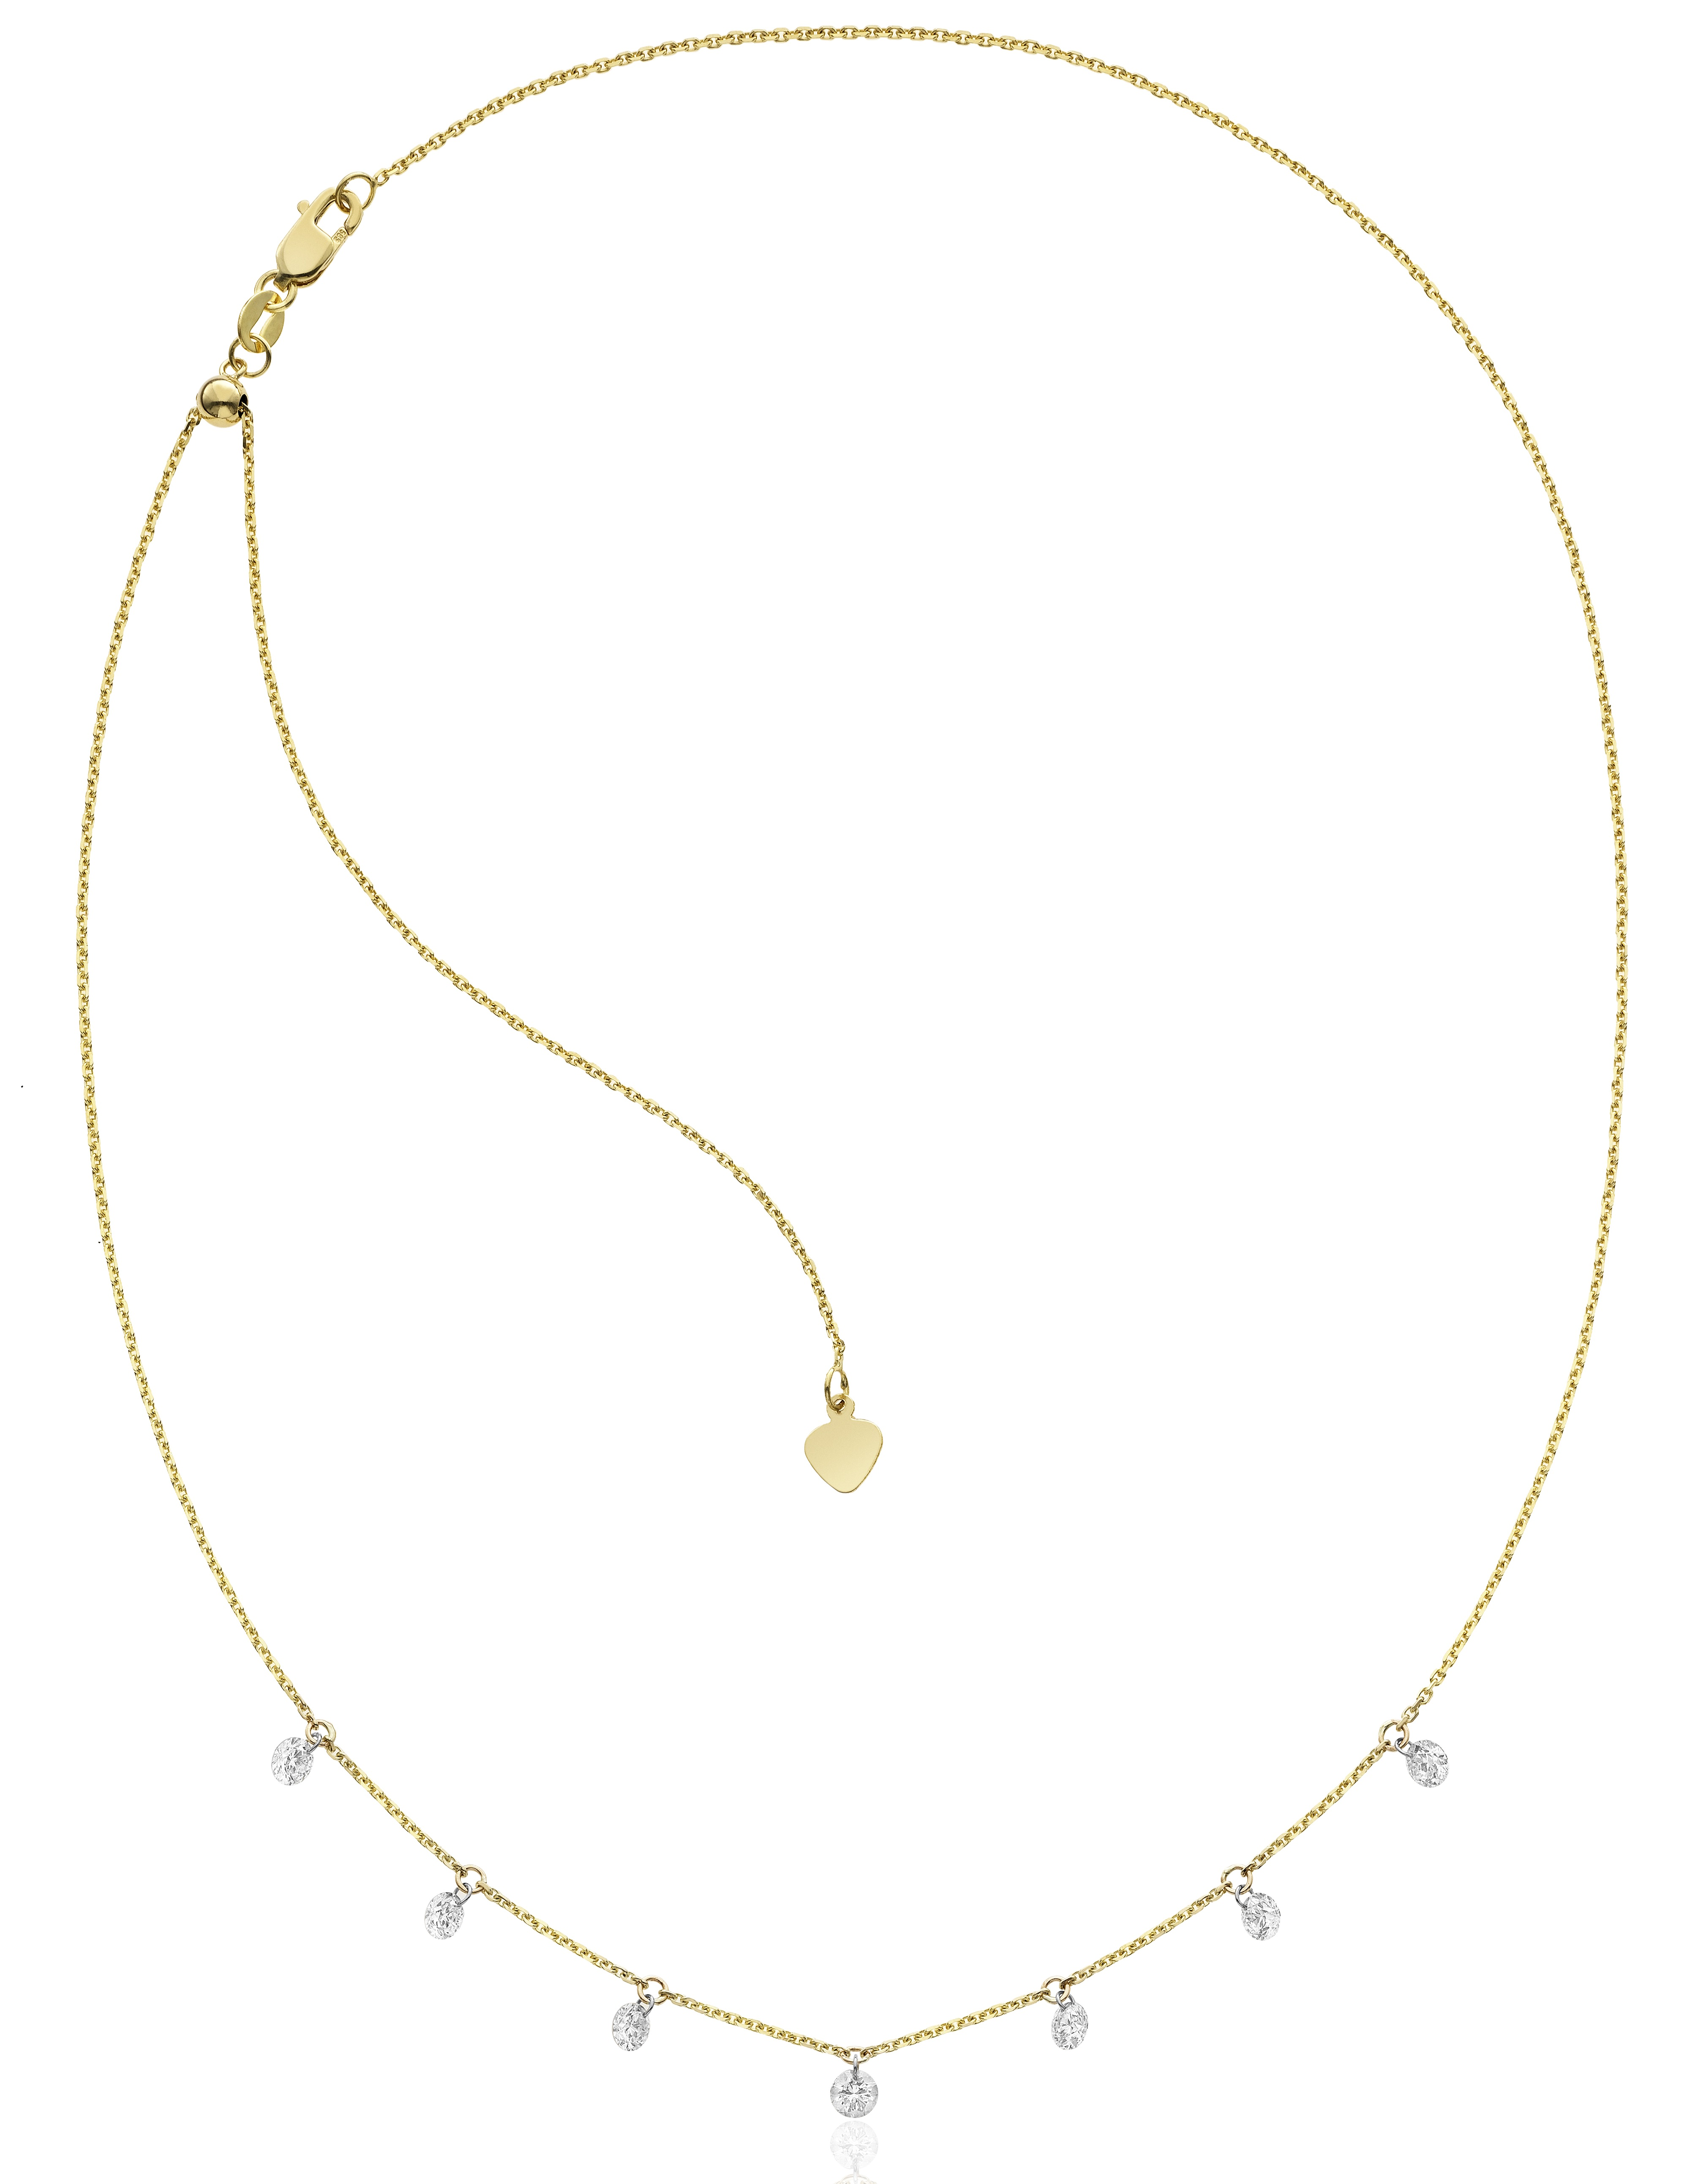 S and R Designs 7-stone dangle necklace | JCK On Your Market